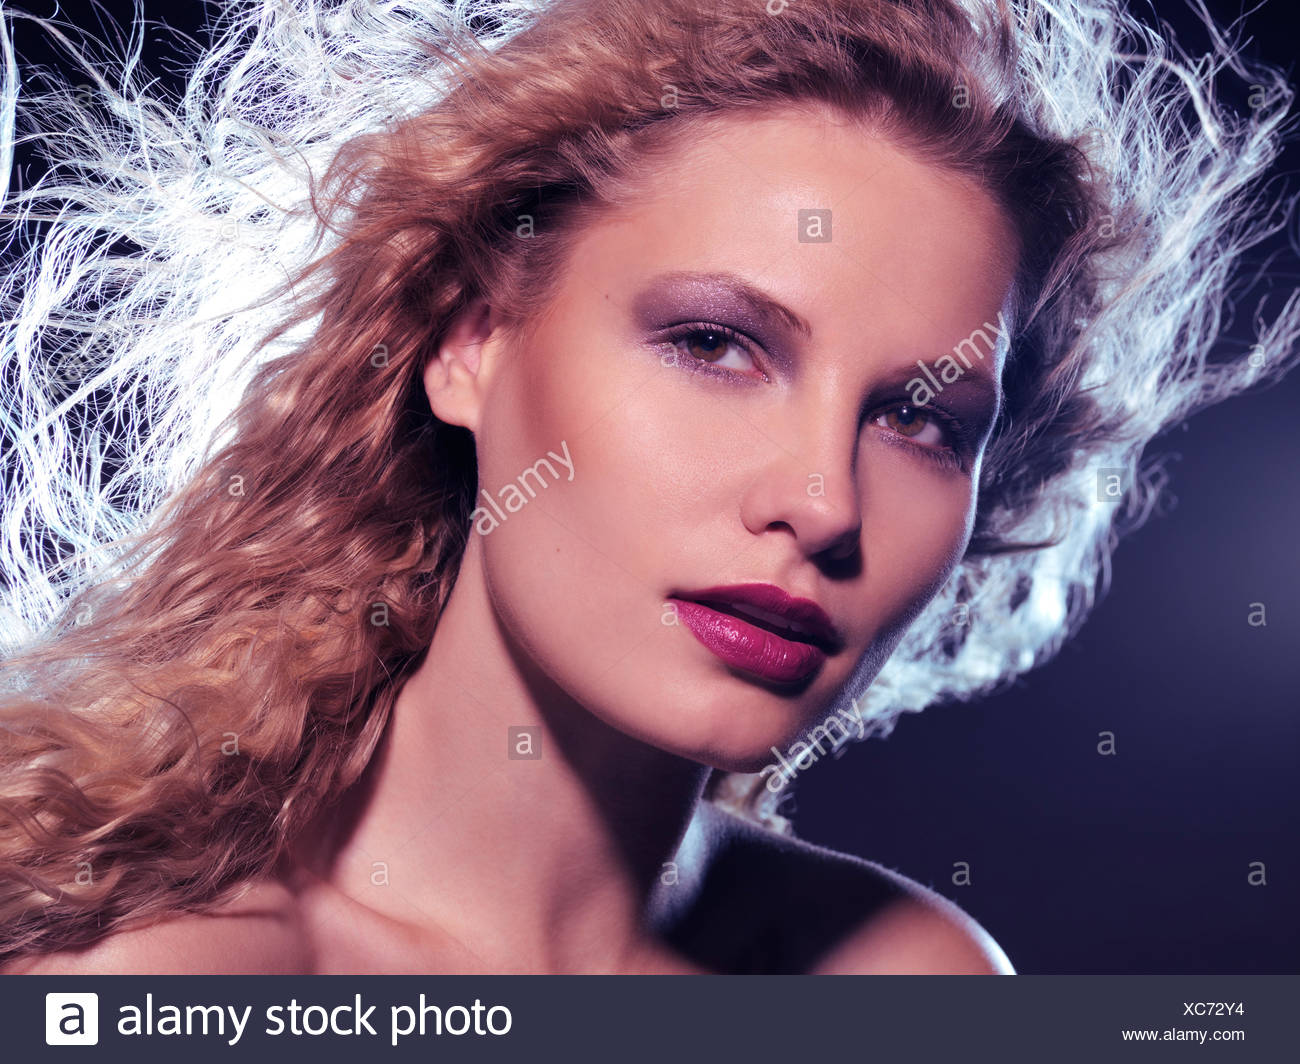 Portrait of a woman wearing makeup with flying long hair - Stock Image